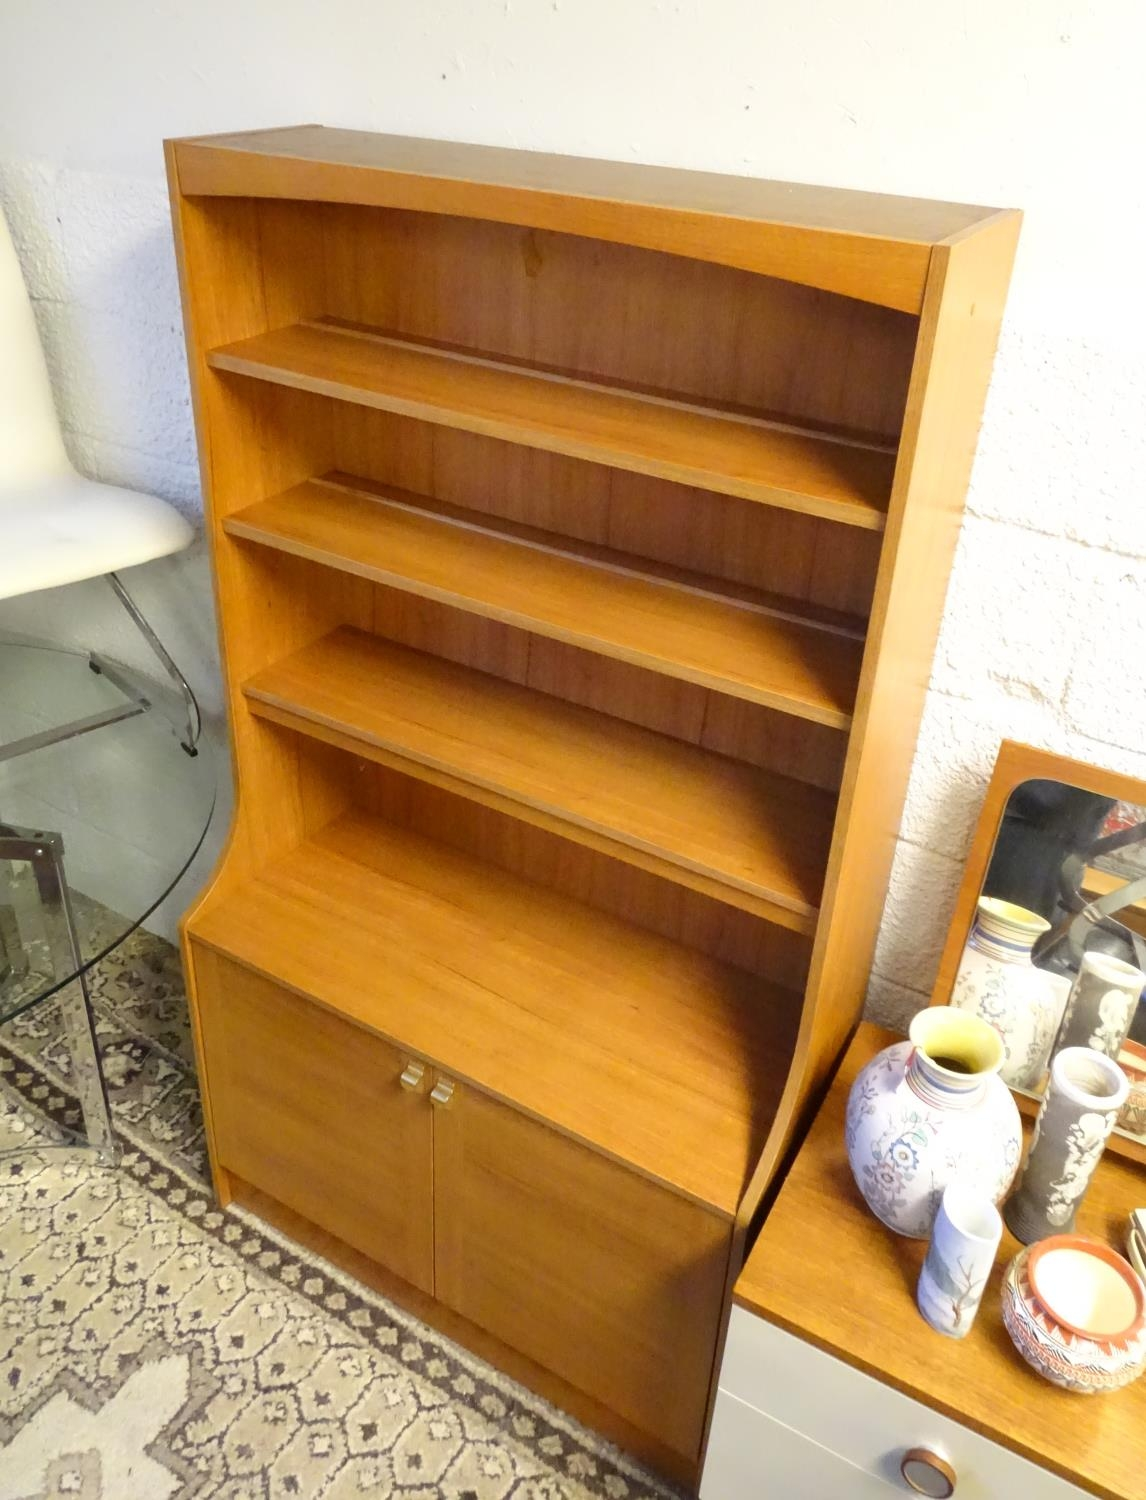 Vintage Retro, Mid Century: a Schreiber dresser bookcase, in teak finish with three shelves and - Image 4 of 7